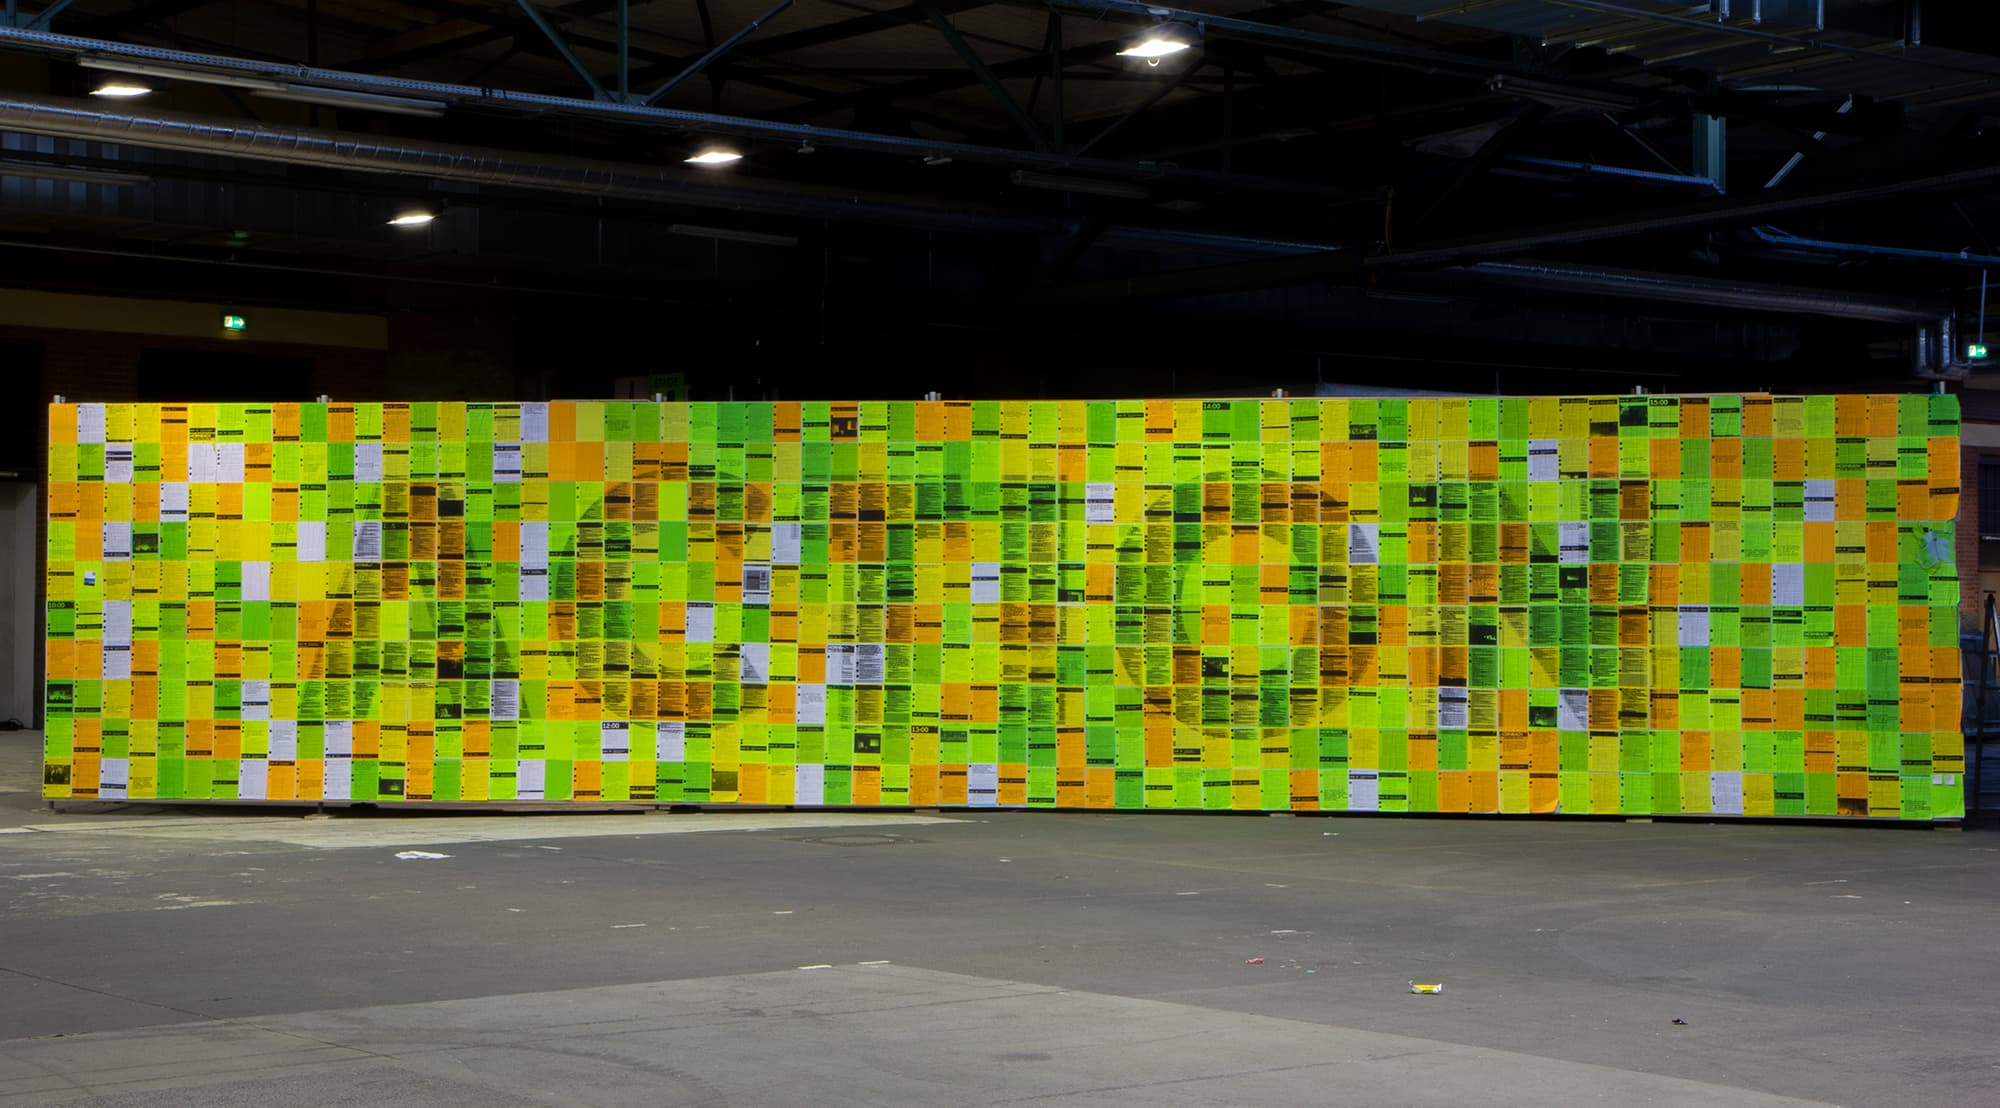 The final state of the twitter wall at the end of day 3.